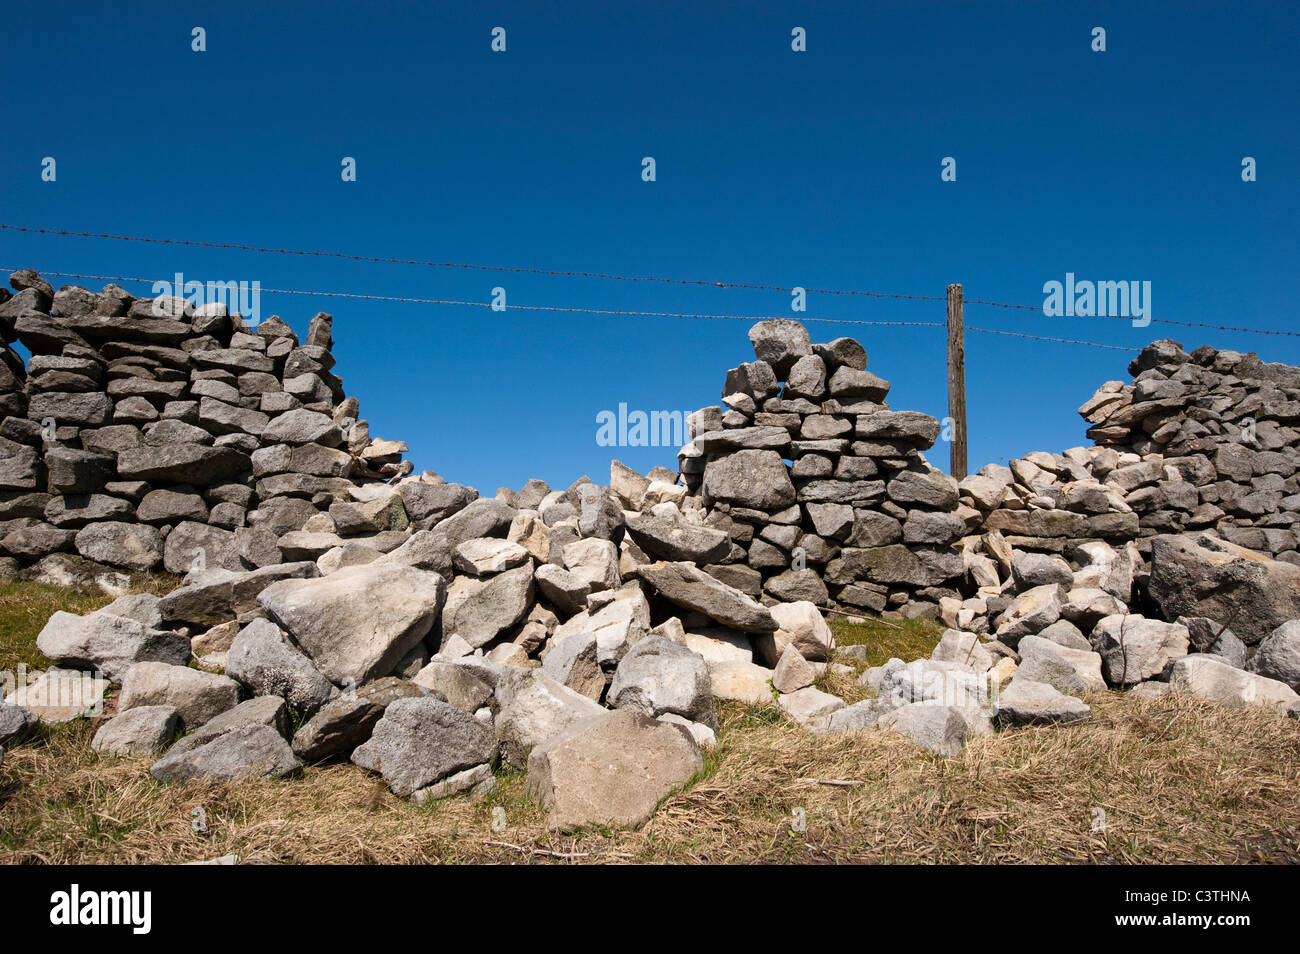 Drystone wall in poor state of repair - Stock Image